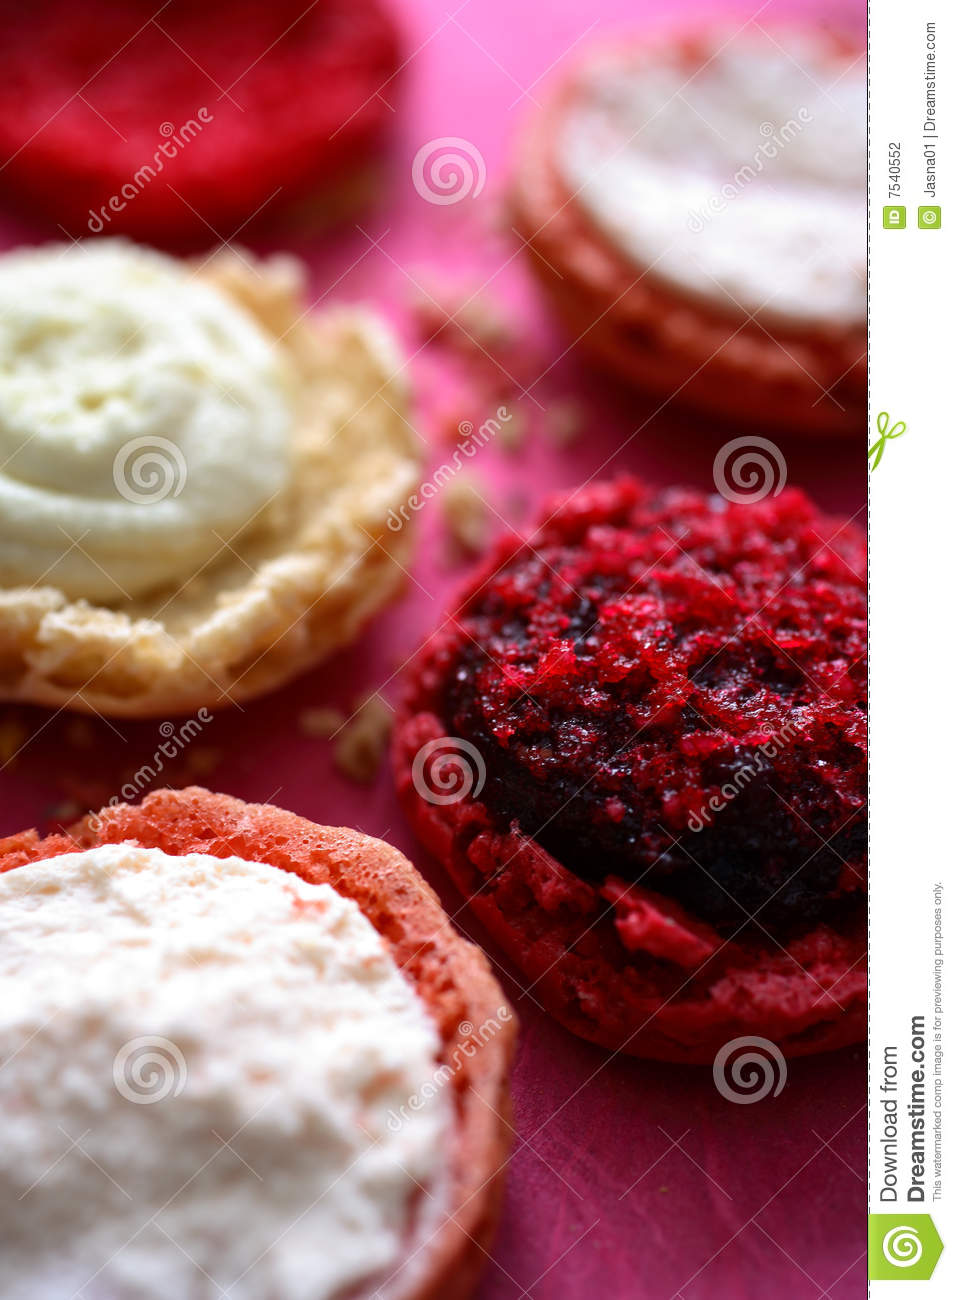 Macaroon Filling On Round Pastry Stock Photography - Image ...